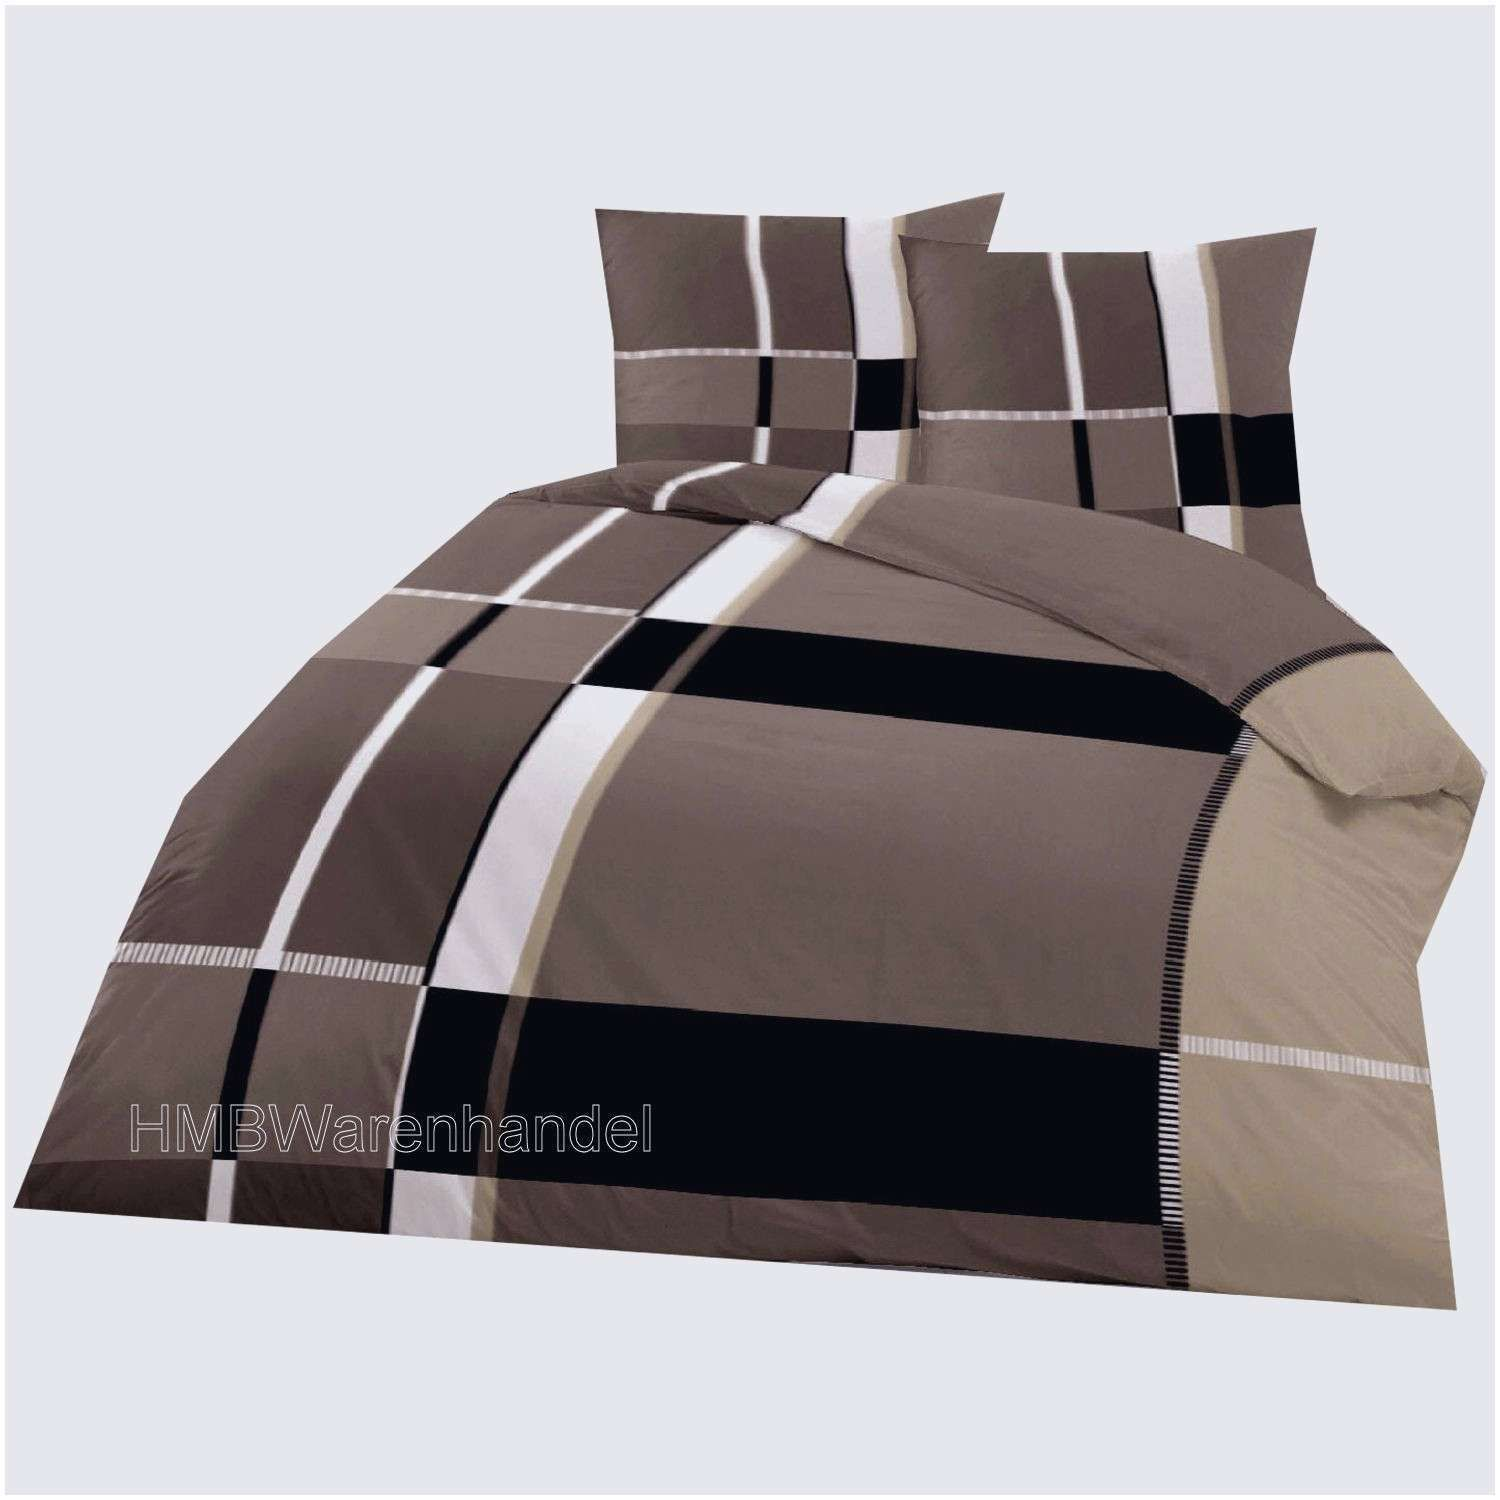 Housse De Couette Ikea 220x240 Housse De Couette Ikea 220x240 Qchardwareoverclock Idees De Decoration Creer Son Idees De Decorationeer Bed Comforters Blanket